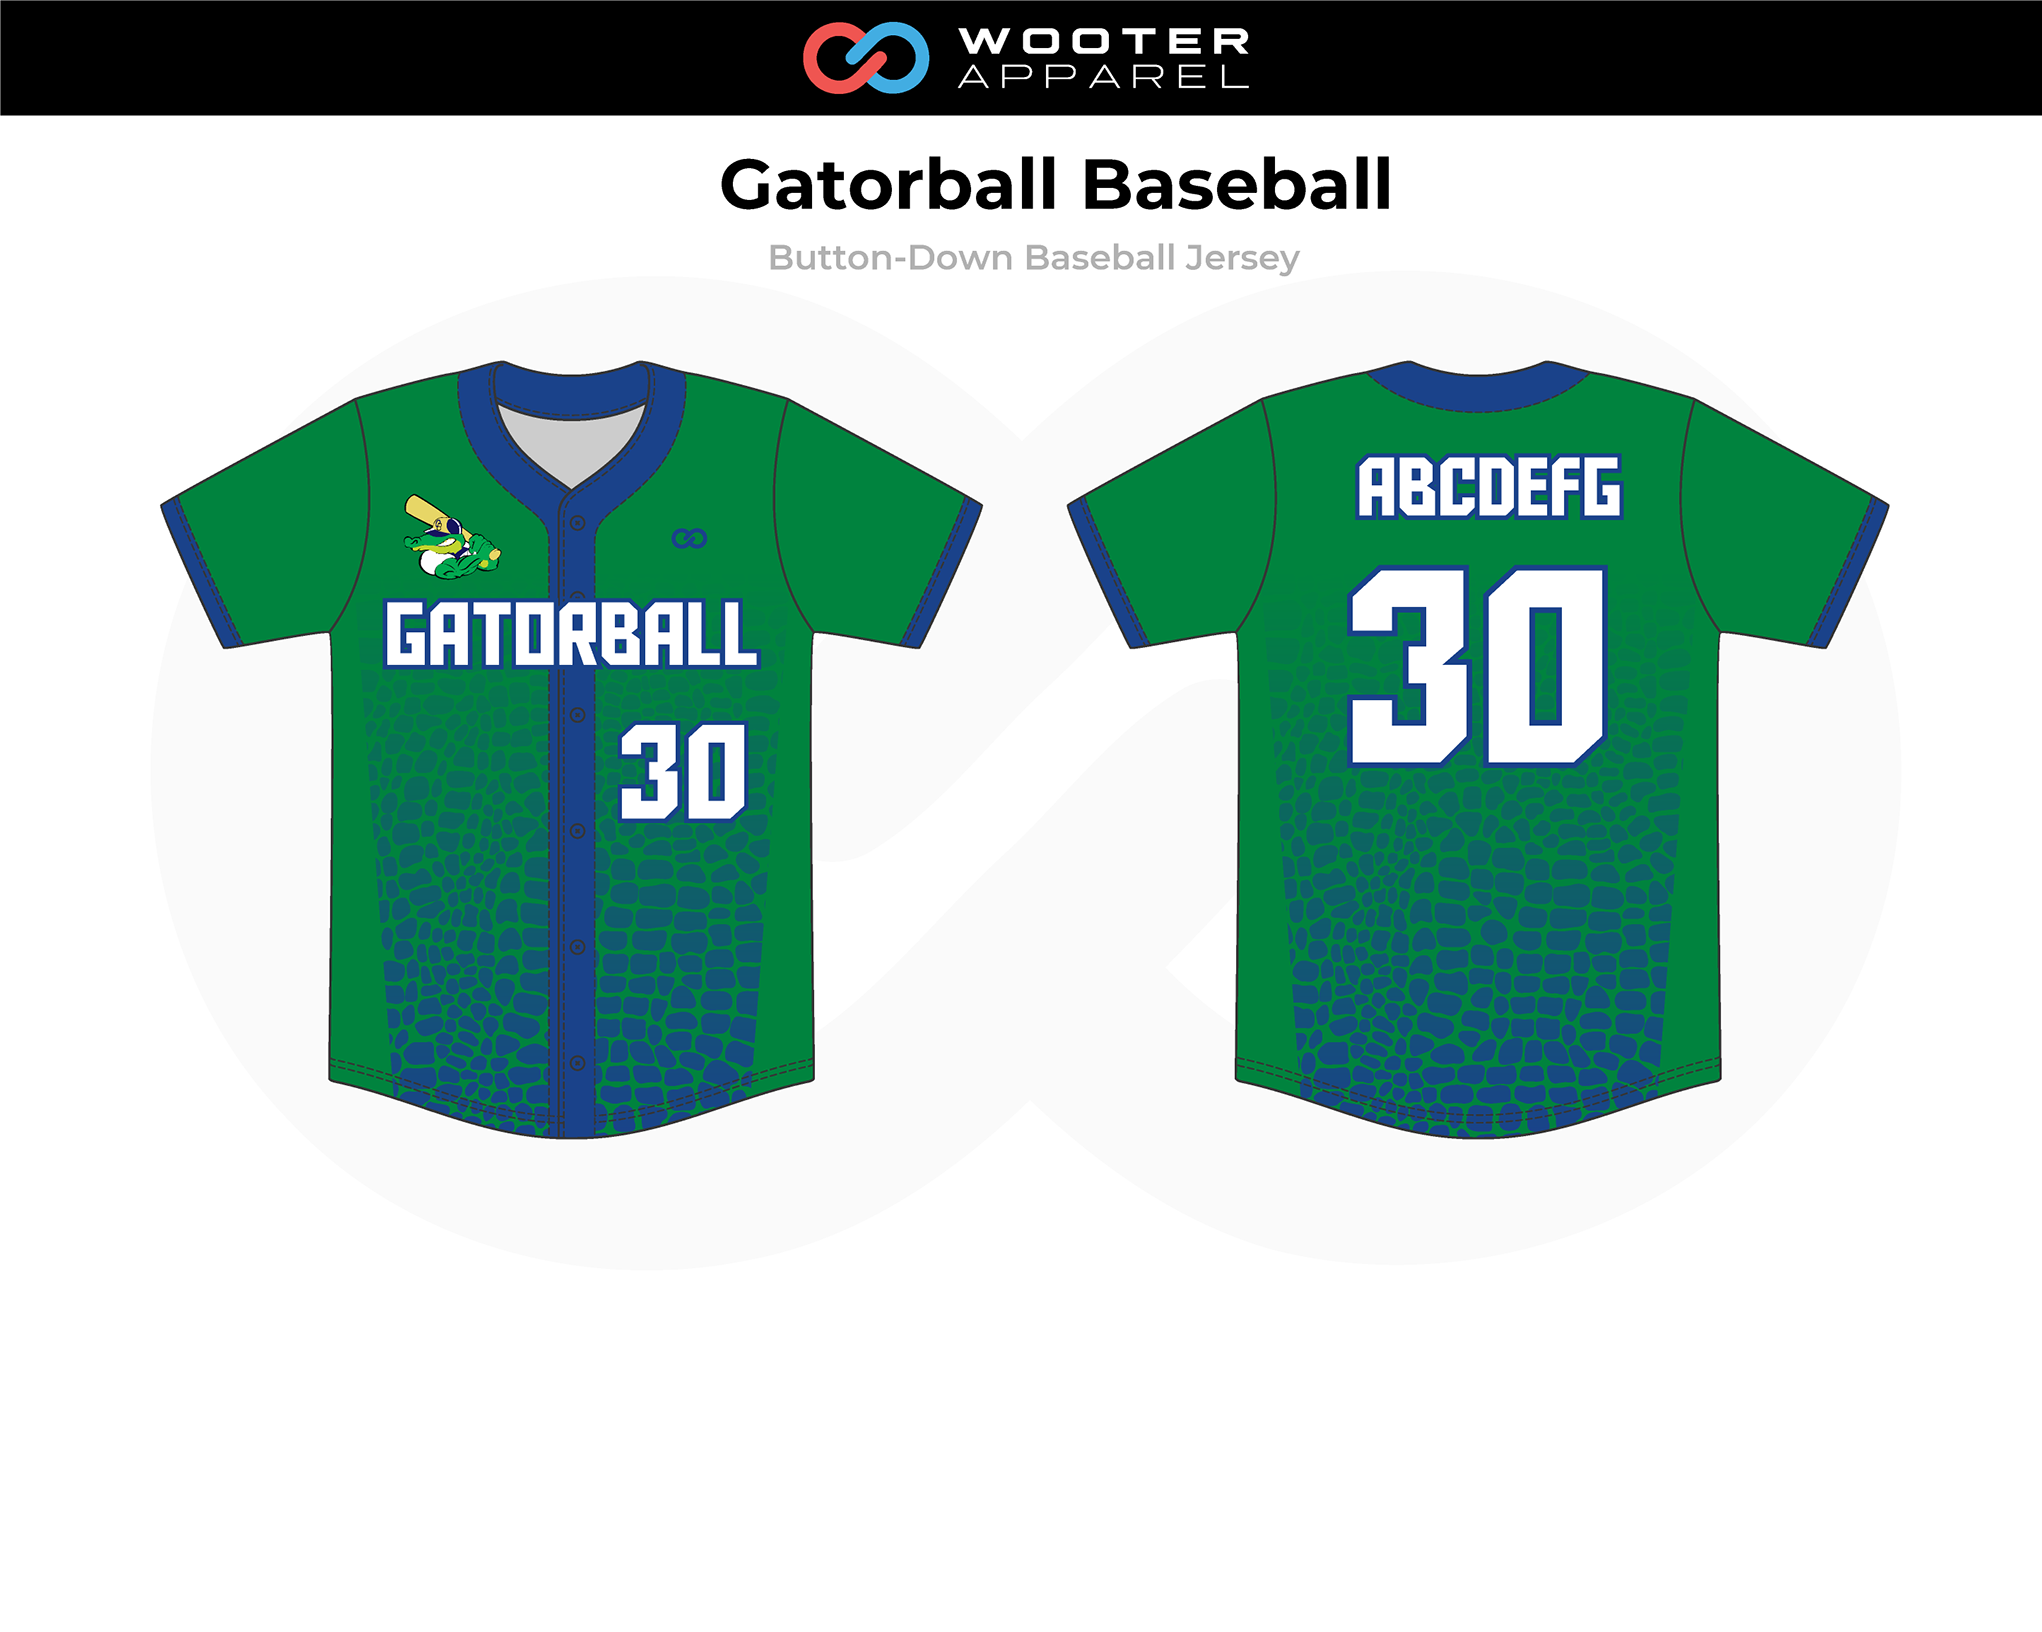 2019-02-04 Gatorball Baseball Button-Down Jersey (Skin).png